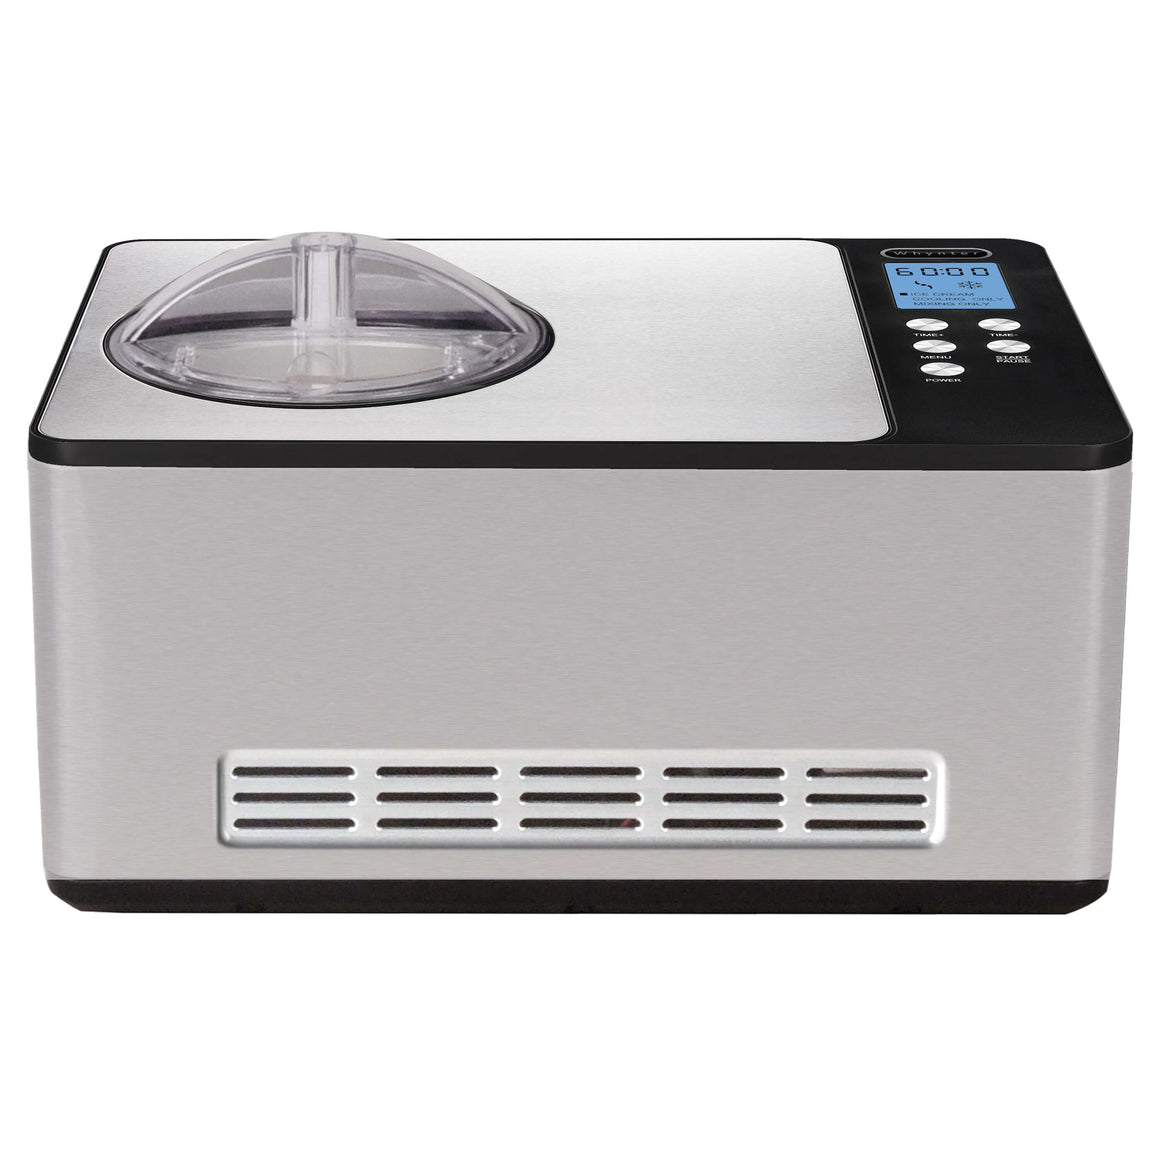 Whynter 2.1 Quart Ice Cream Maker – Stainless Steel - ICM-200LS